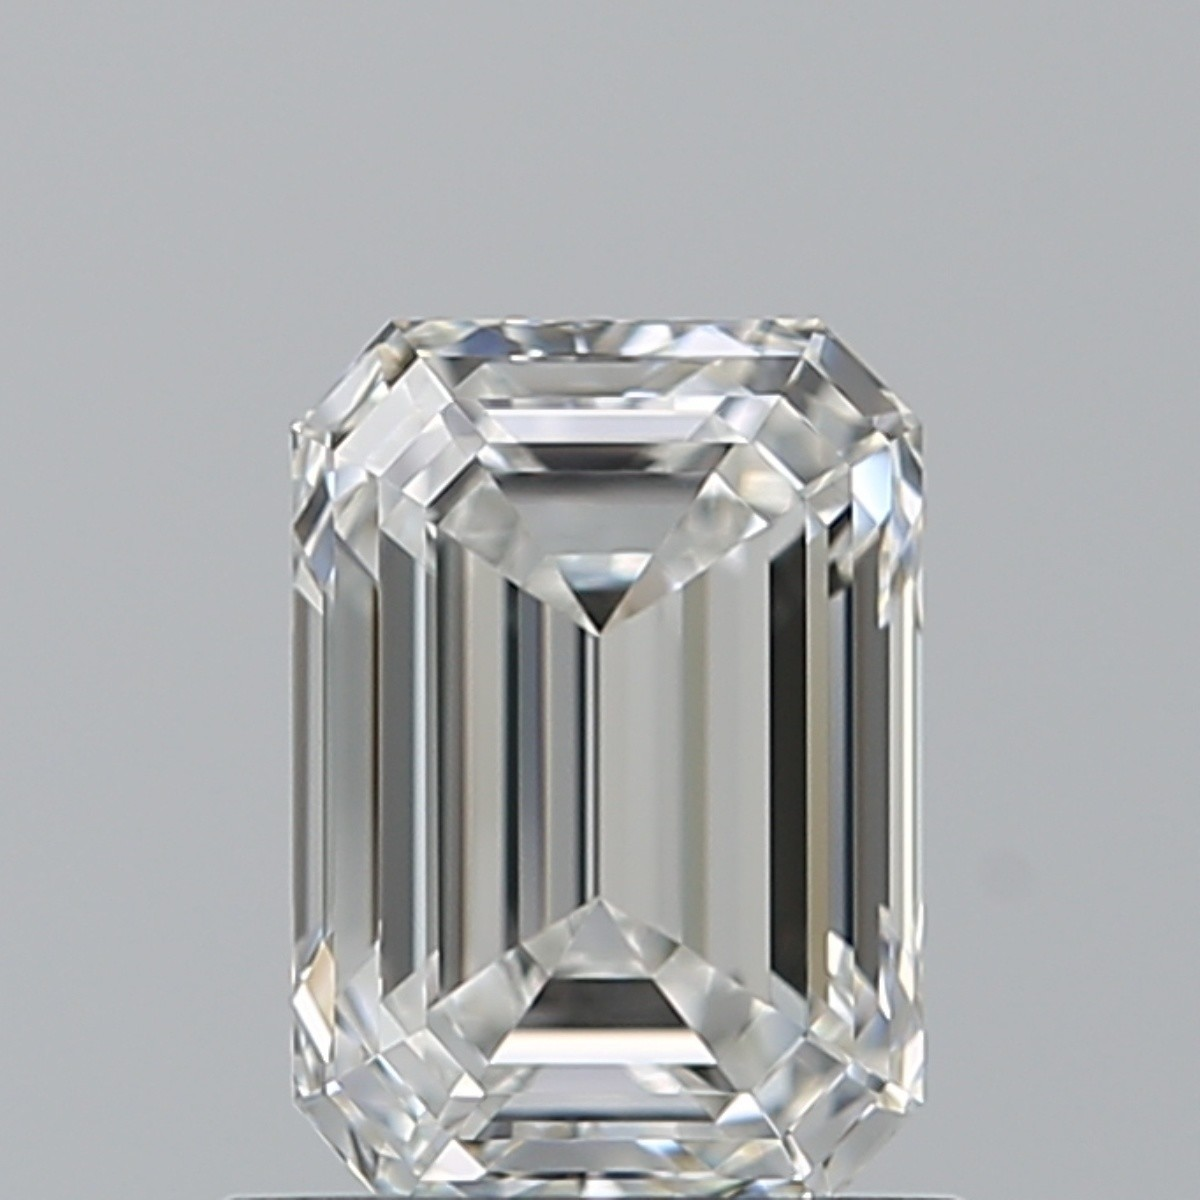 1.01 Carat Emerald Diamond (F/VVS2)